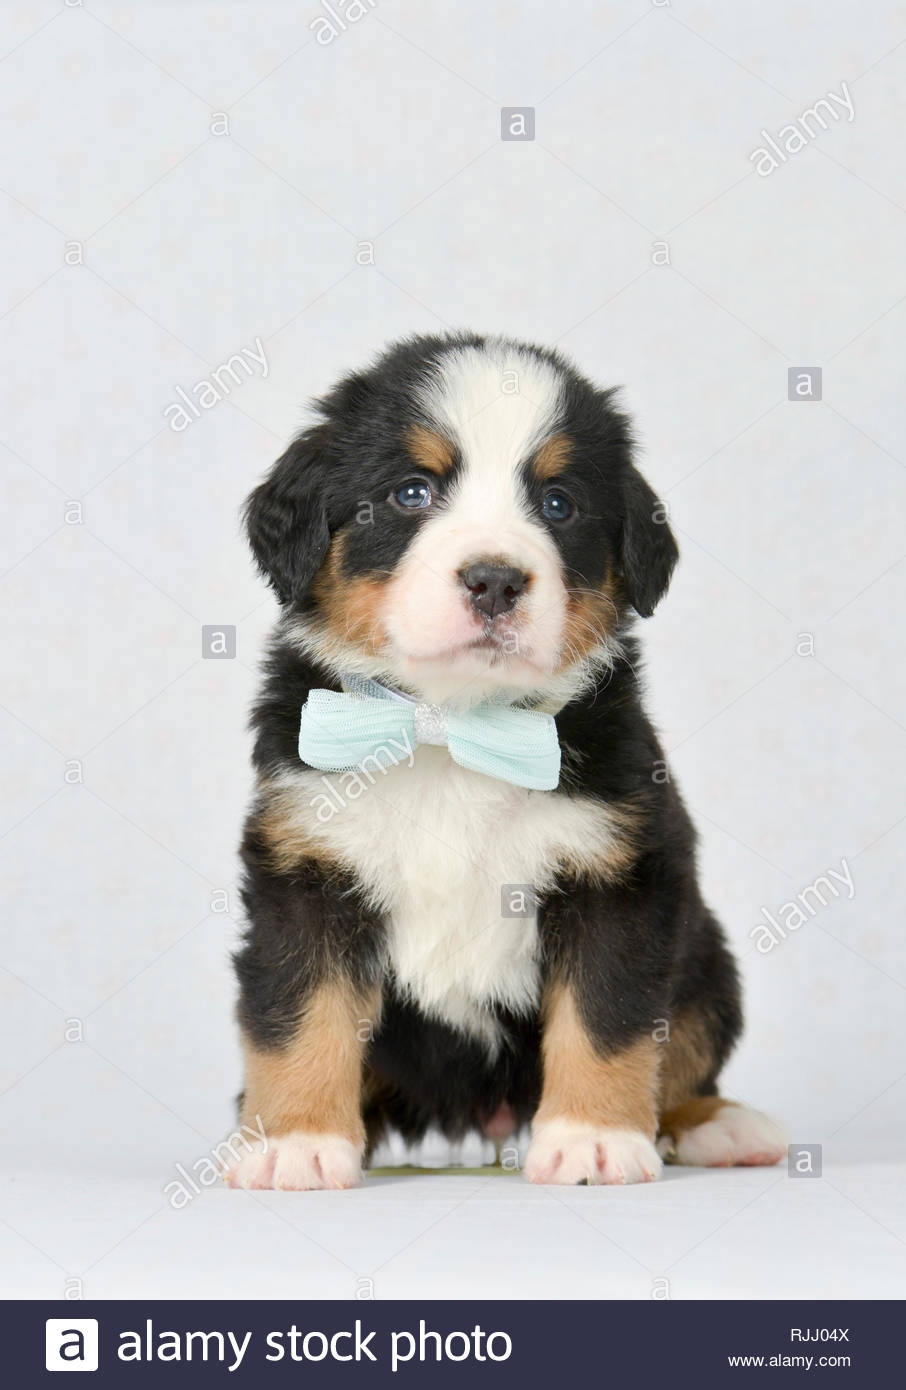 Bernese Mountain Dog. Puppy (5 weeks old) sitting, wearing turquoise bow tie. Studio picture. Germany - Stock Image